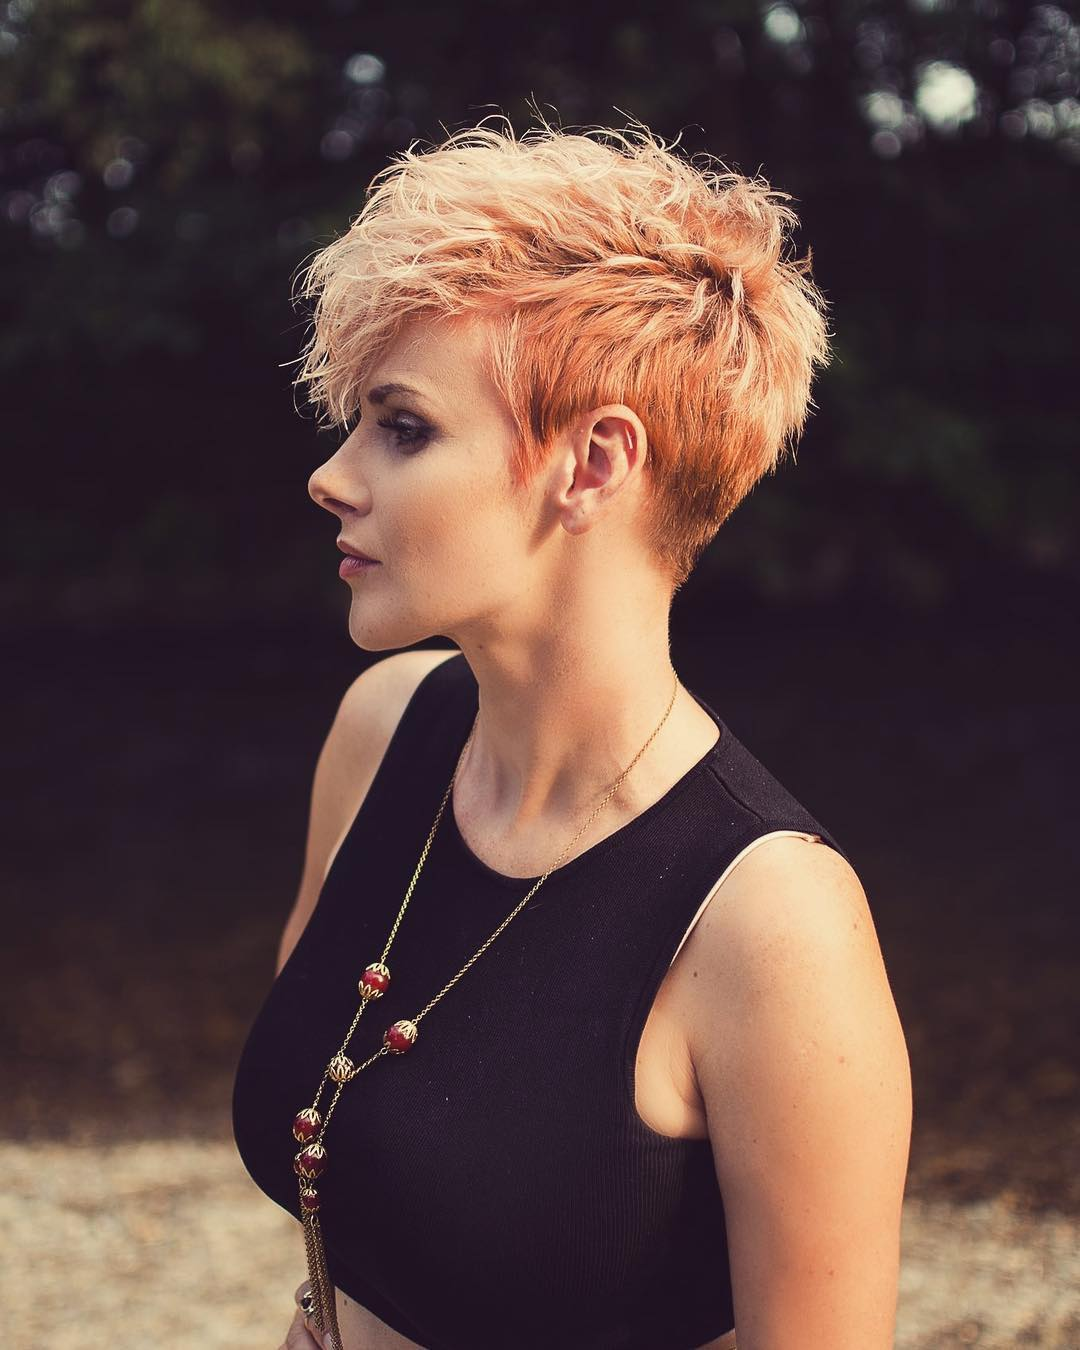 10 peppy pixie cuts - boy-cuts & girlie-cuts to inspire, 2018